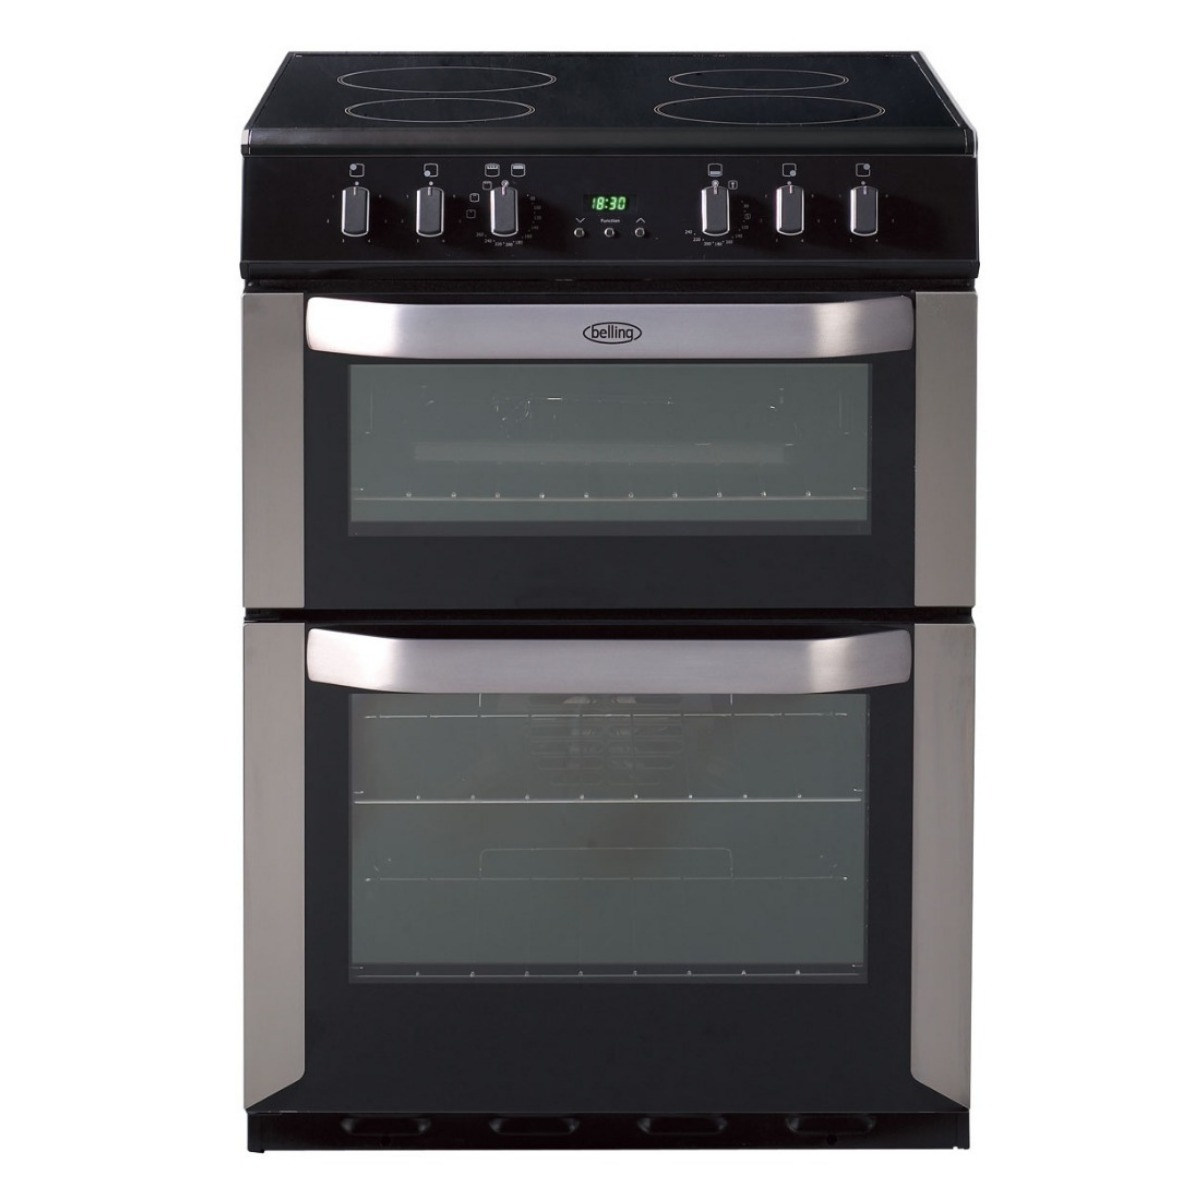 belling 60cm double oven knees home and electrical rh knees co uk Belling Induction Range Belling Appliances